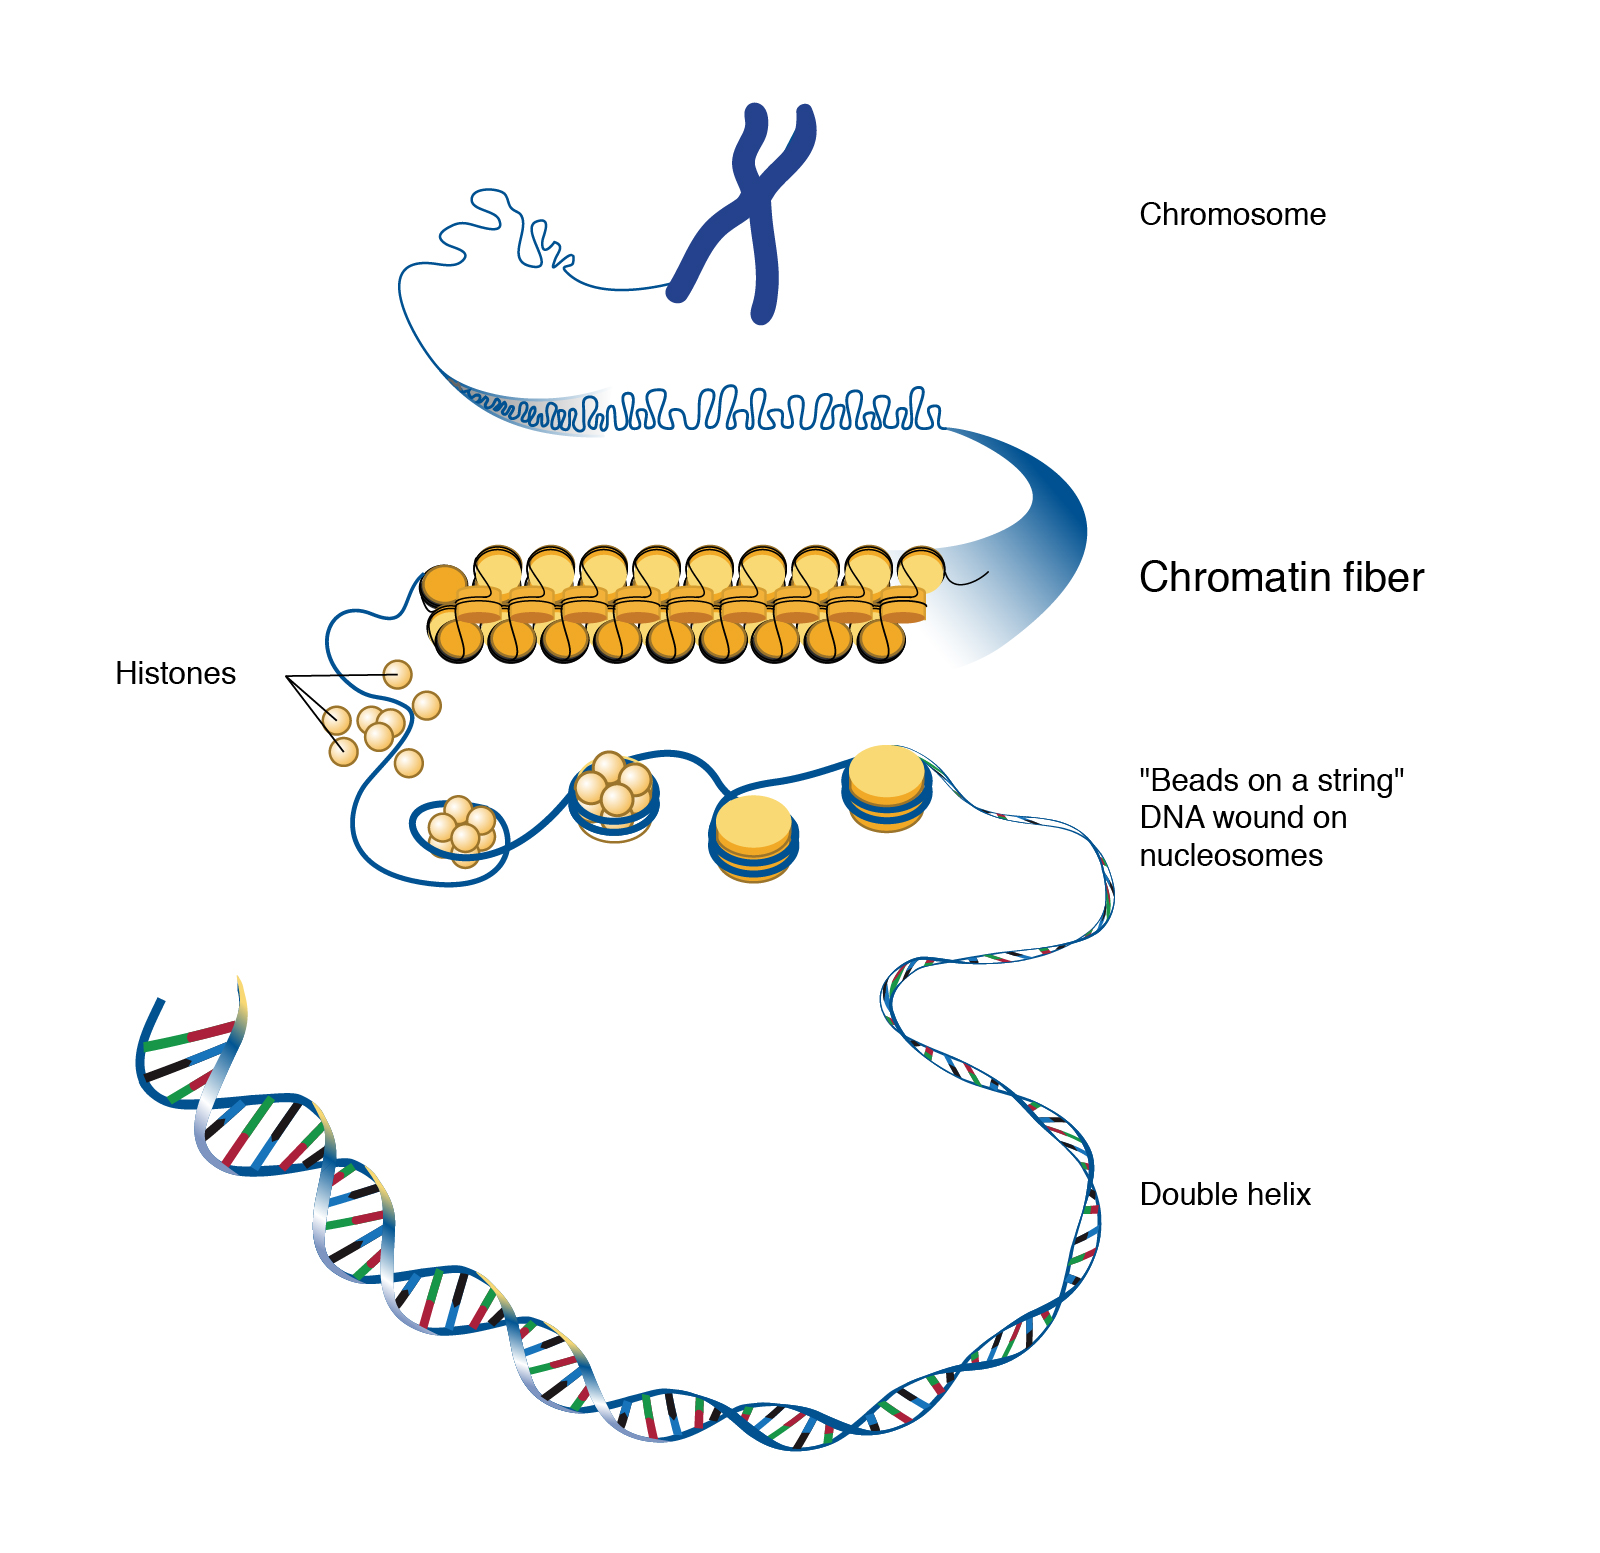 What is the relationship between the concepts of chromatin and chromosomes? Are euchromatin and heterochromatin a part of chromosomes?